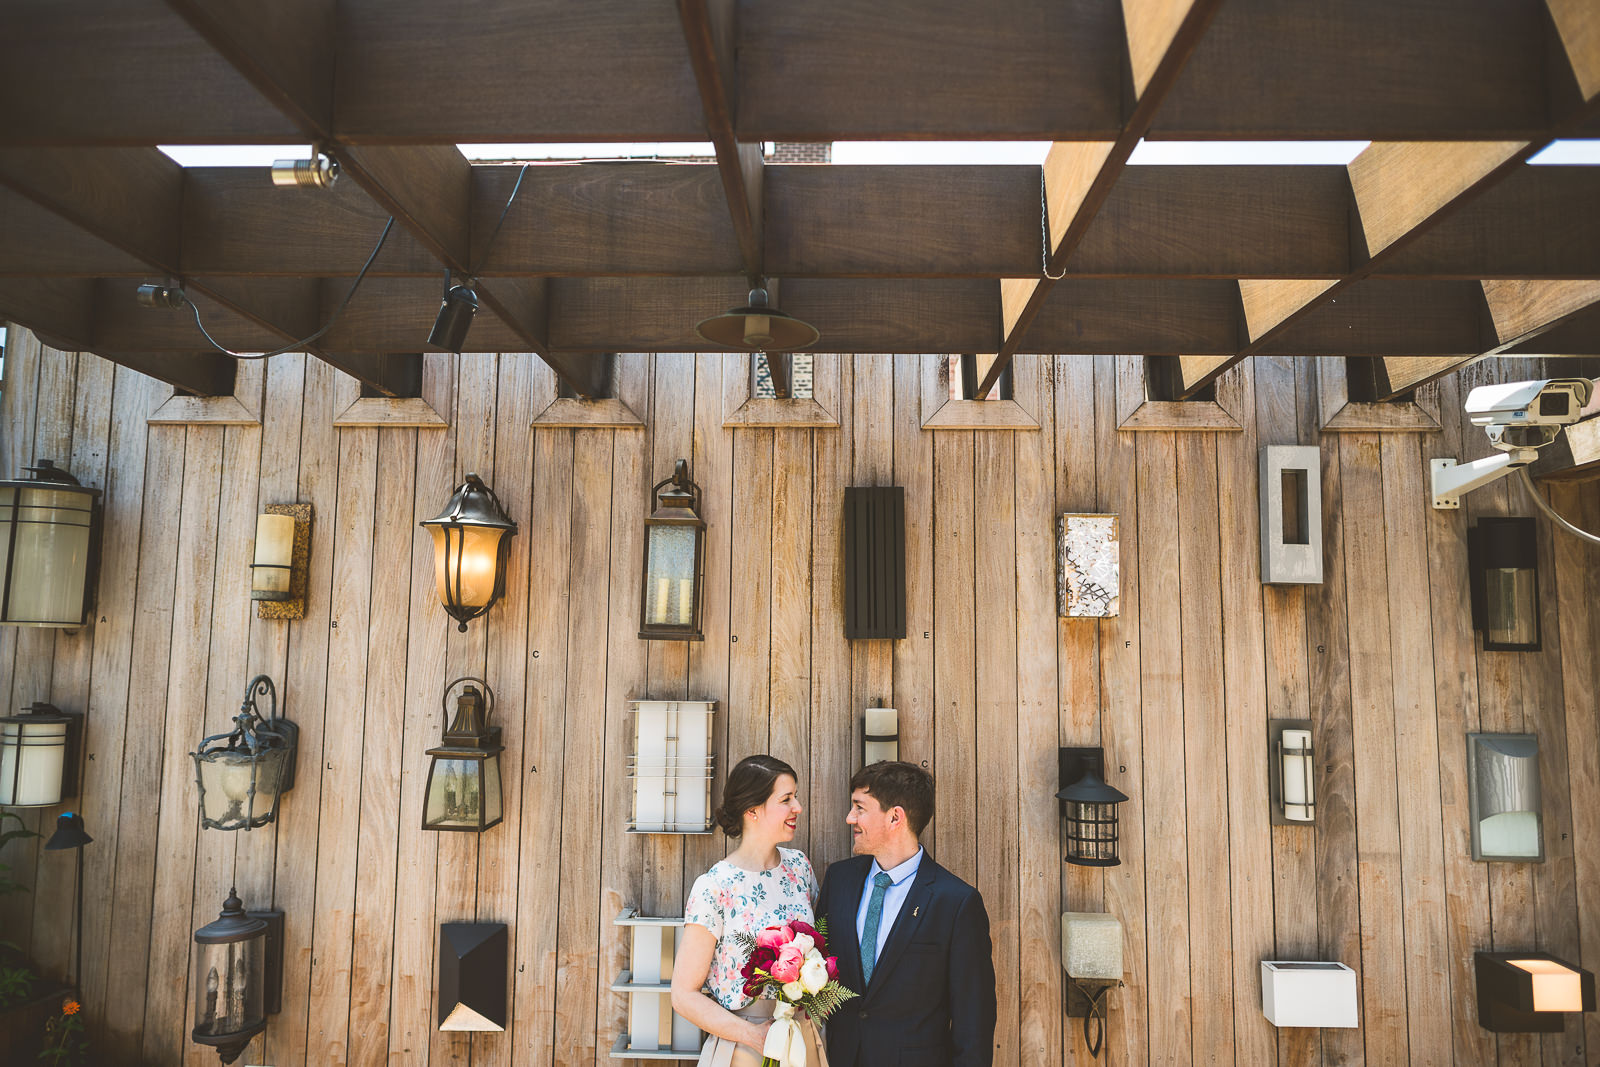 Megan + John // Chicago Elopement at Lightology